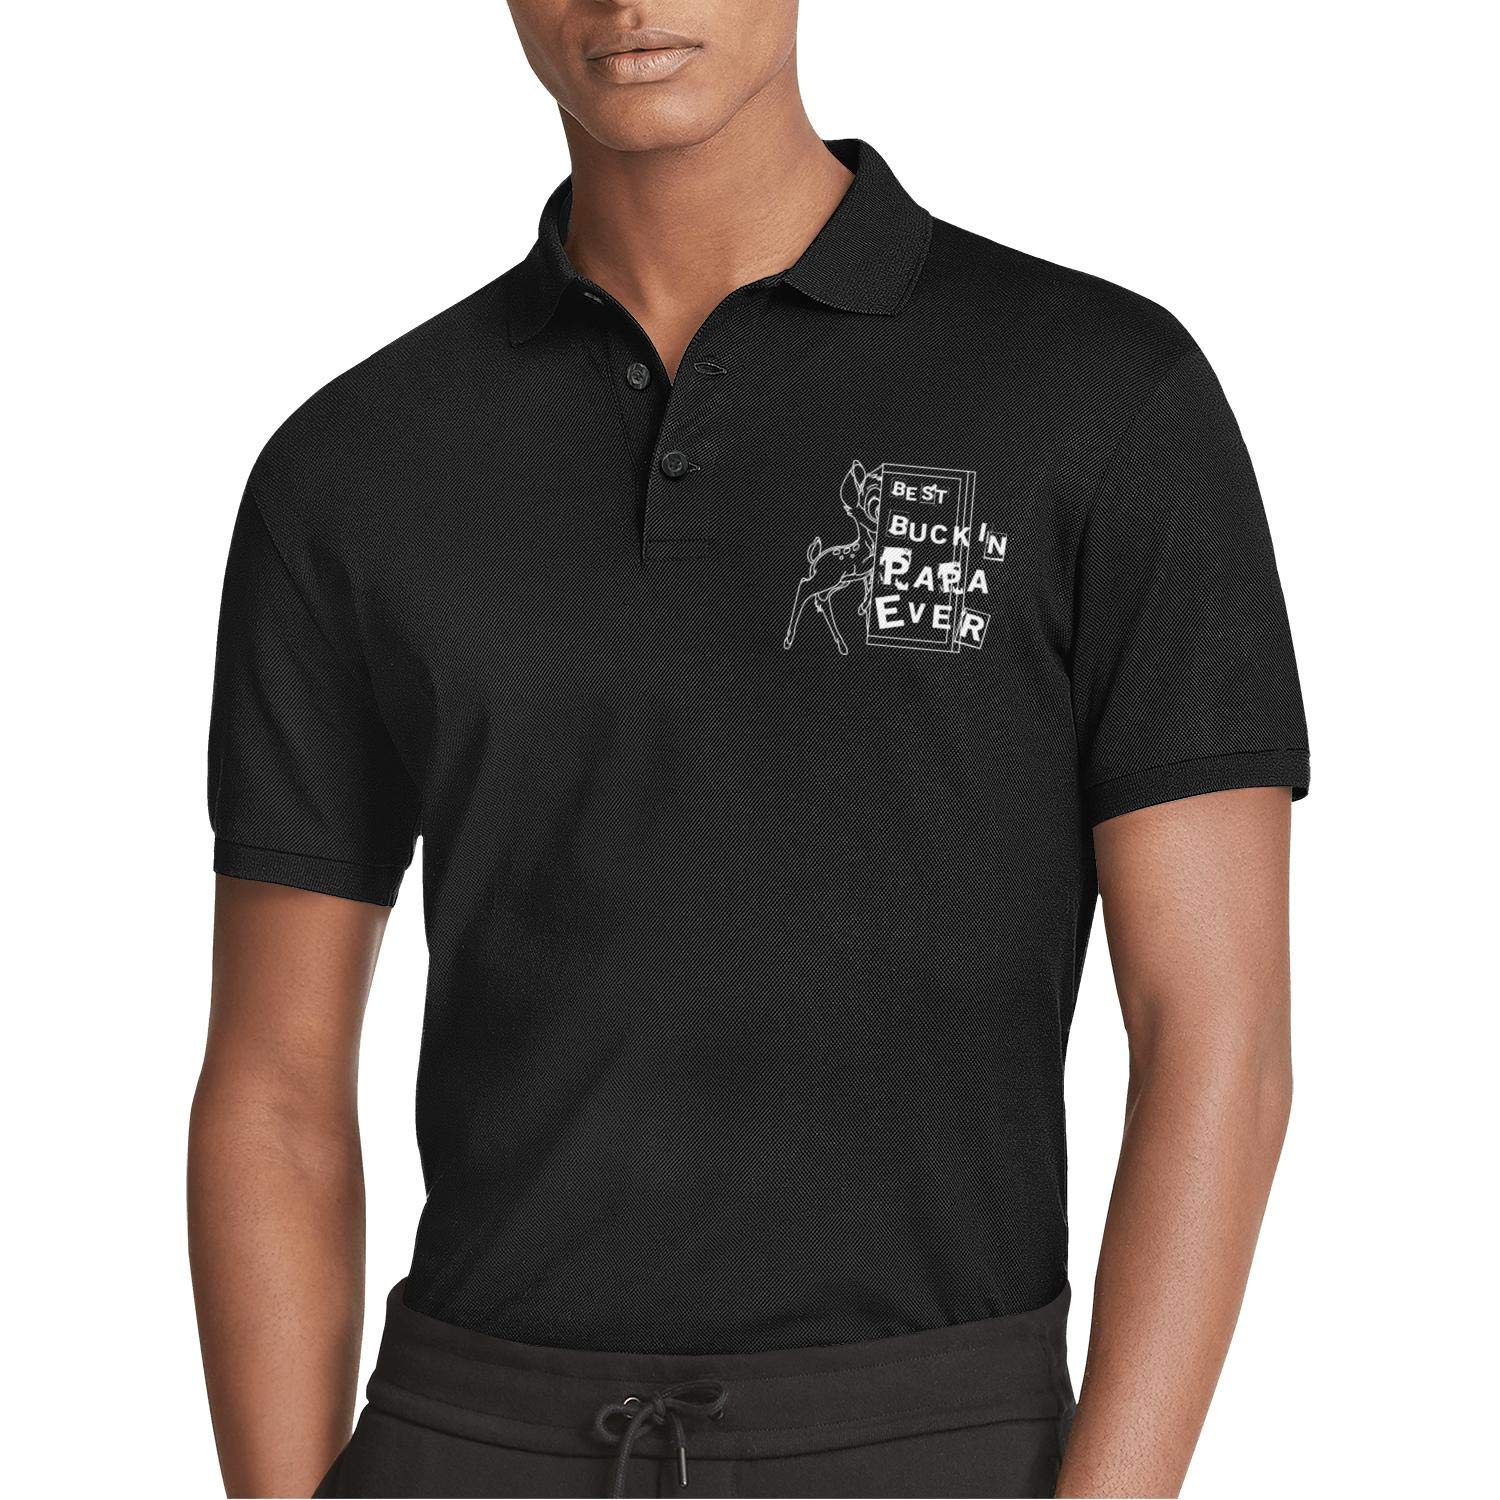 AIKYAN Best Buckin Papa Ever Breast Cancer Shirts Printed Mens Polo Shirt Button Down Party Holiday Camp Beach